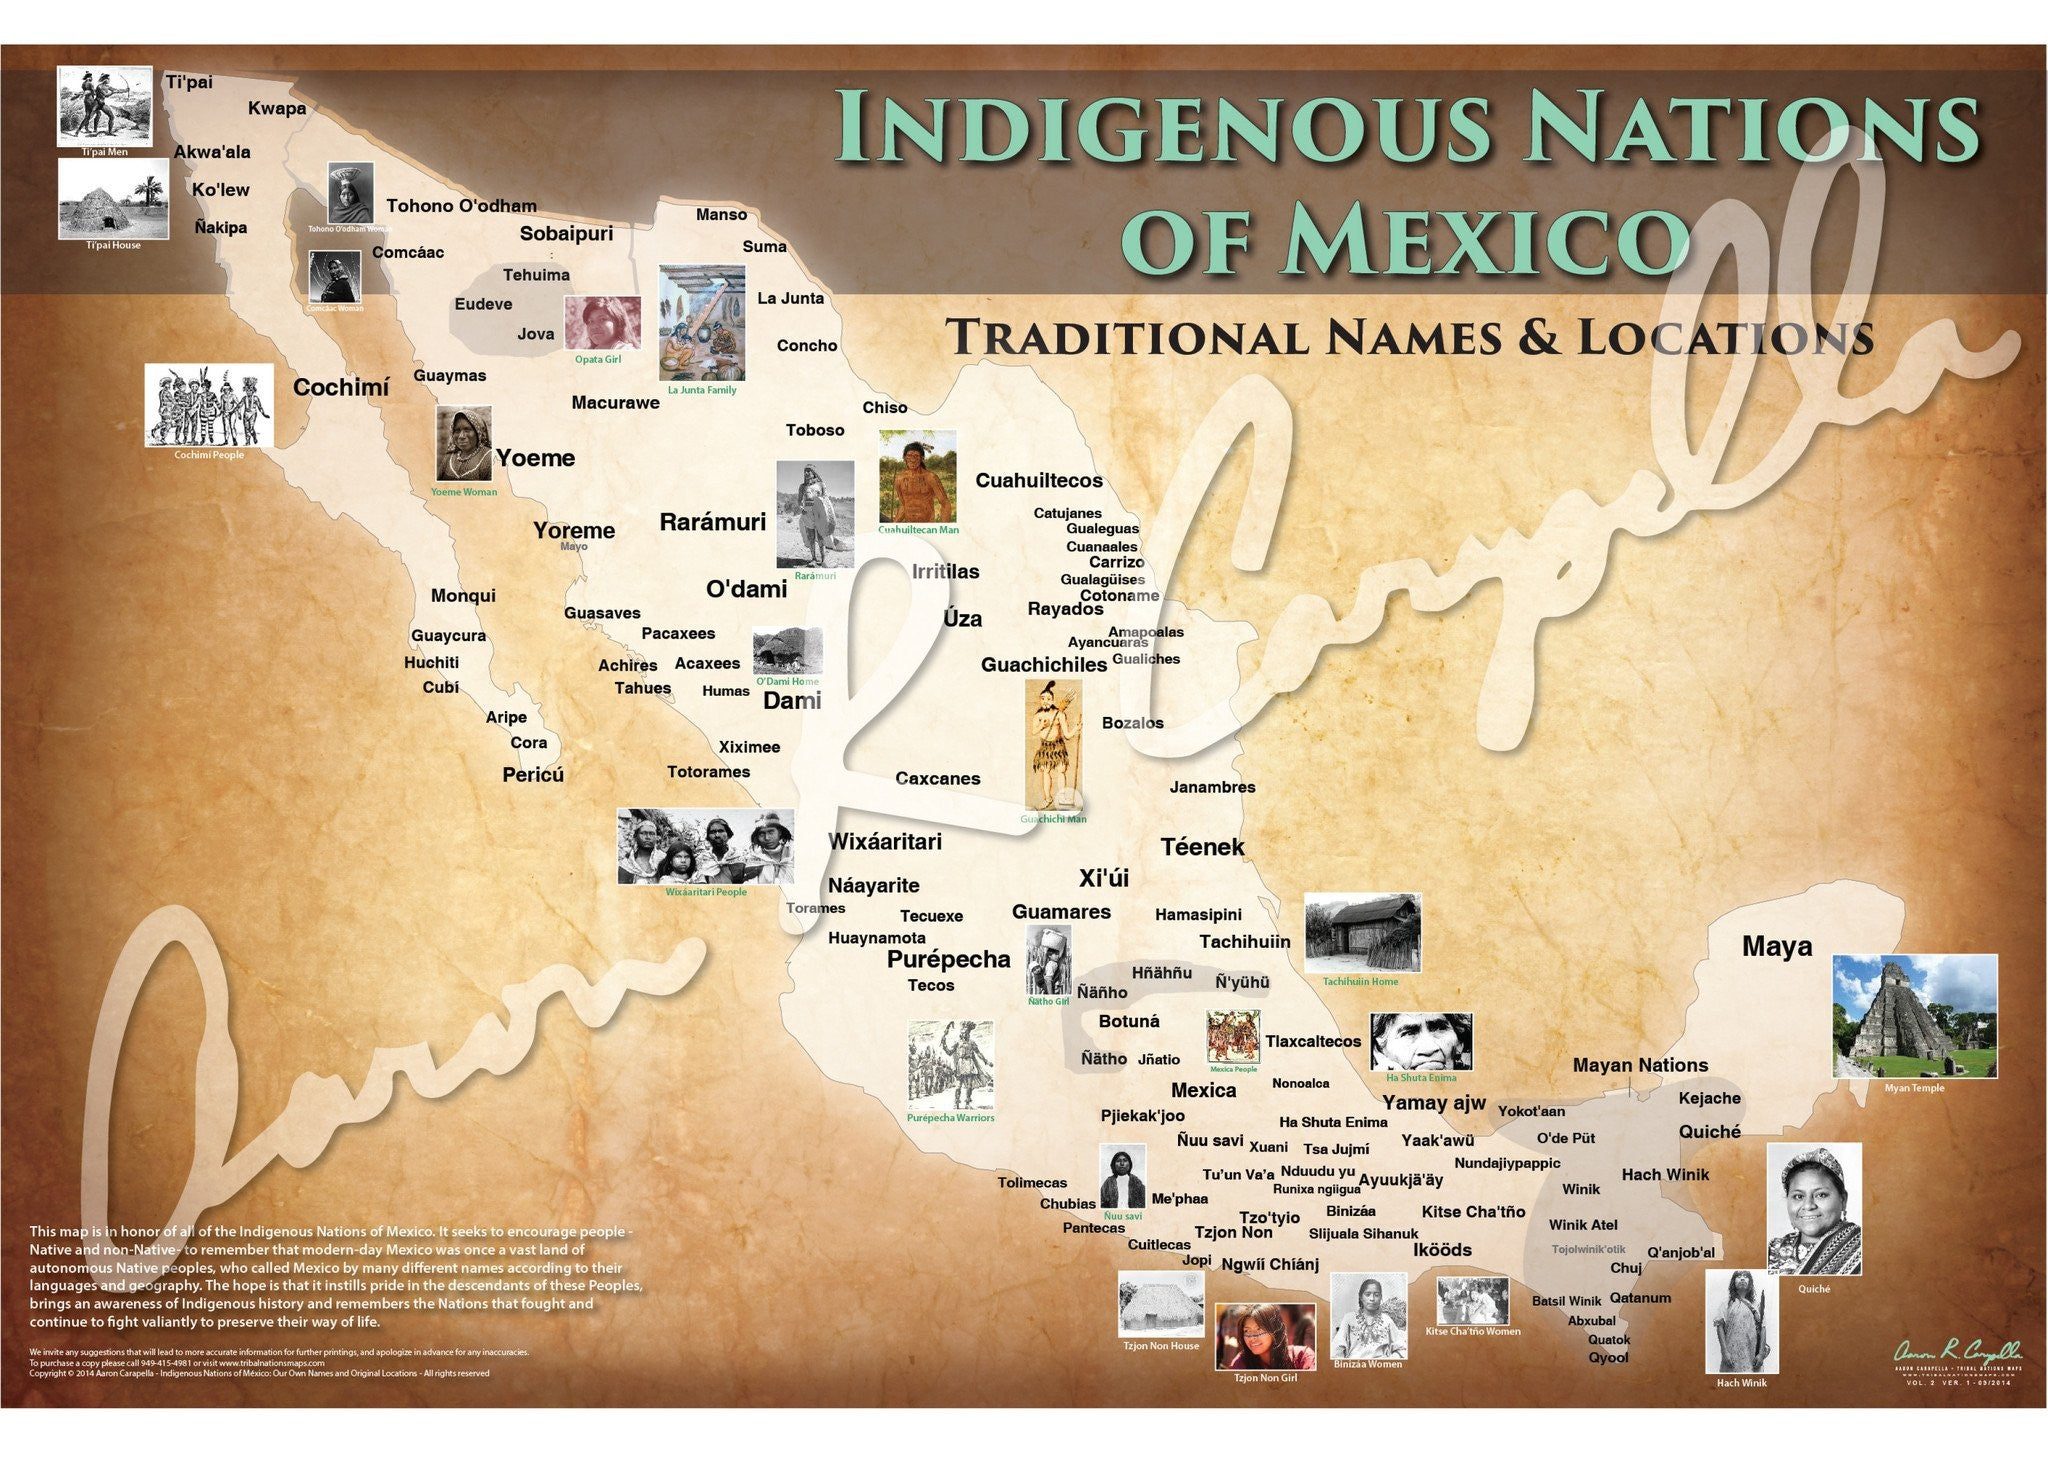 Indigenous Nations of Mexico Map (Native and Common Names)